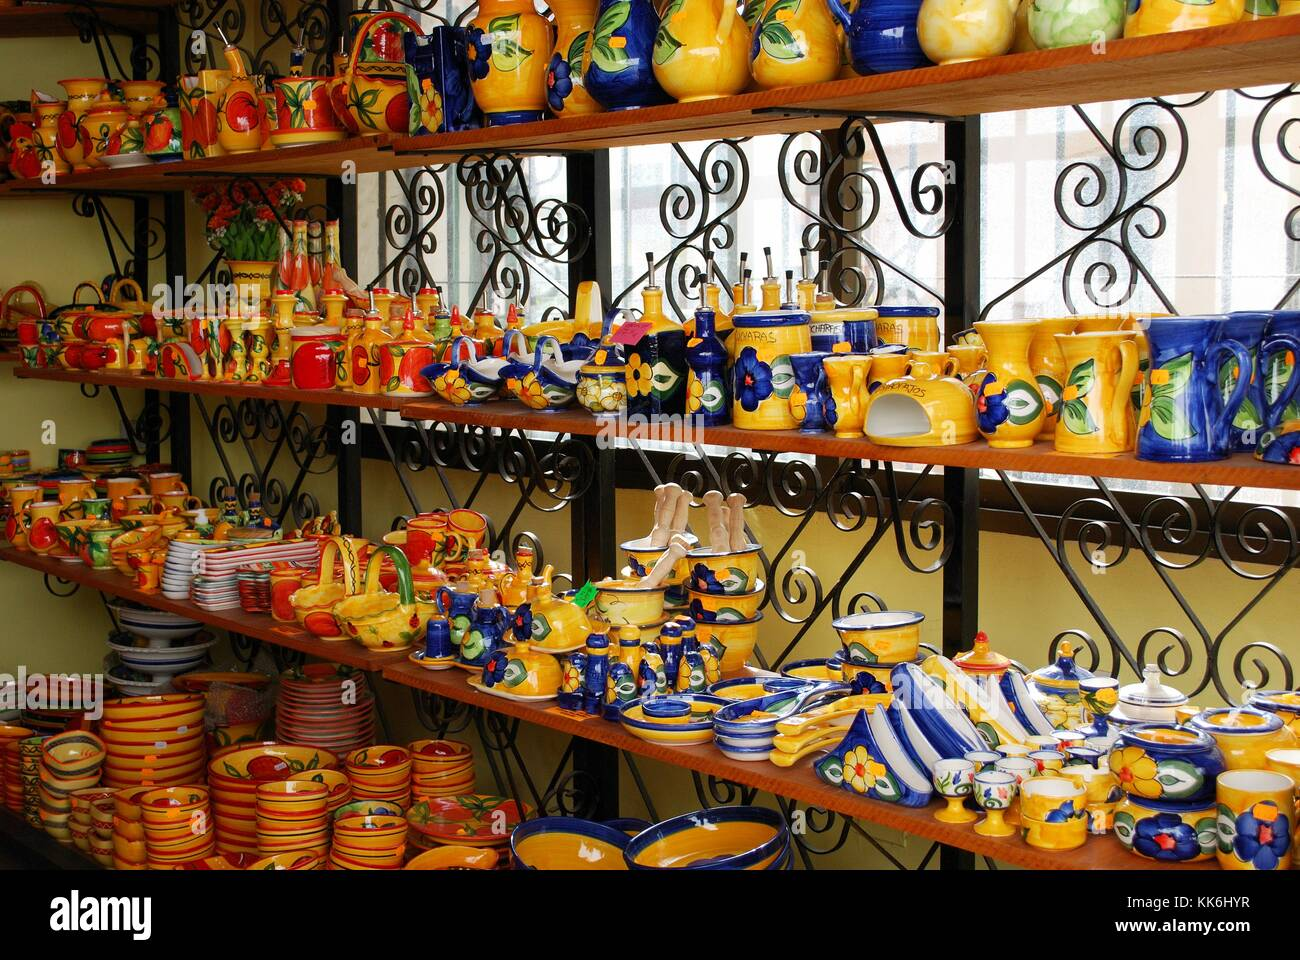 Außenwand Dekoration Metall Shop For Ceramics Spain Stockfotos And Shop For Ceramics